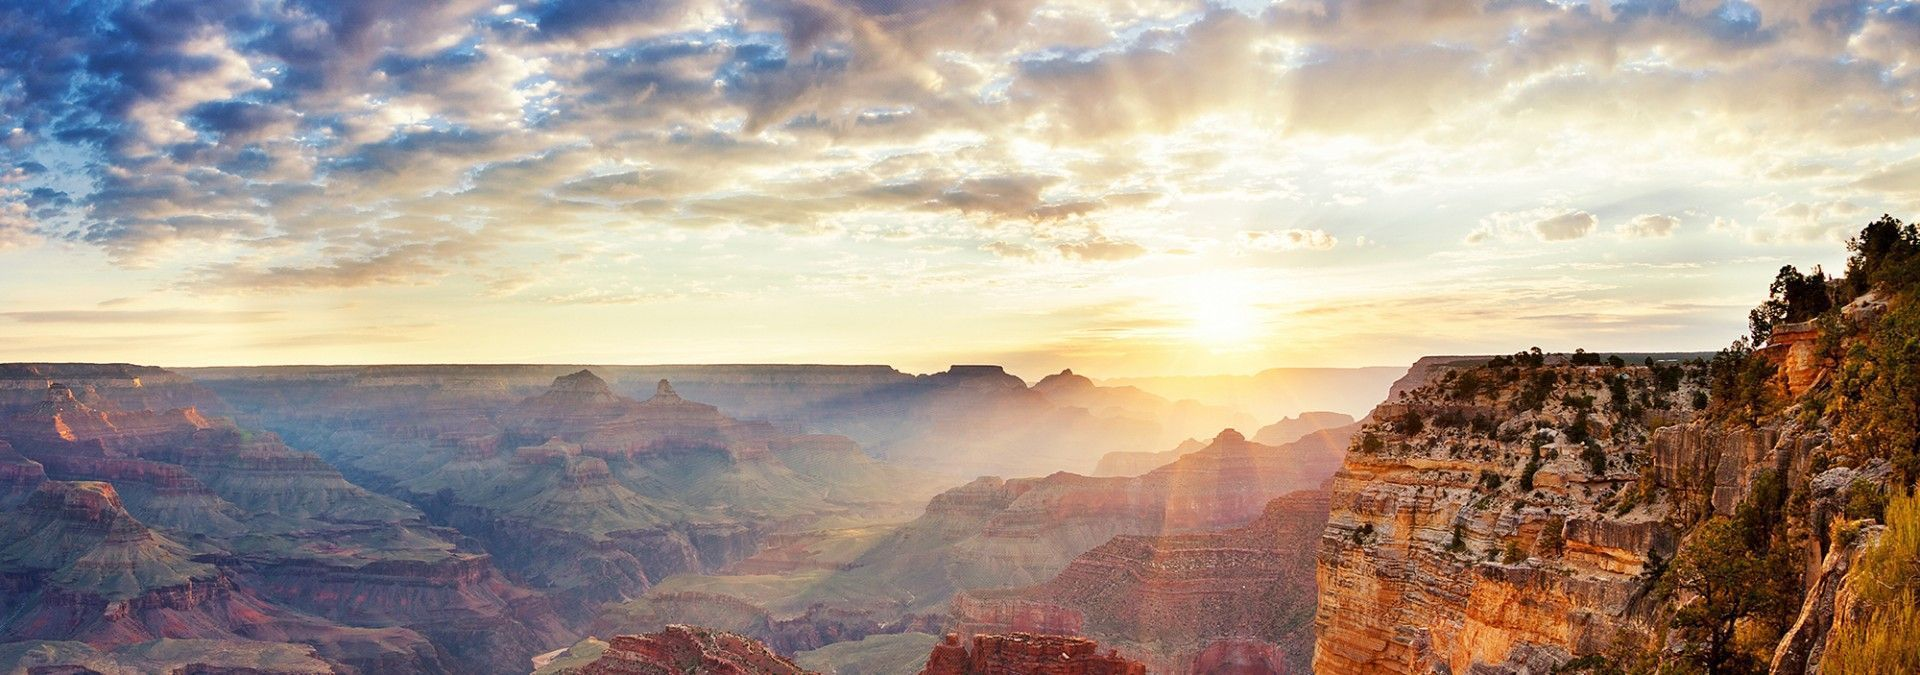 View_of_Grand_Canyon_at_sunrise.jpg